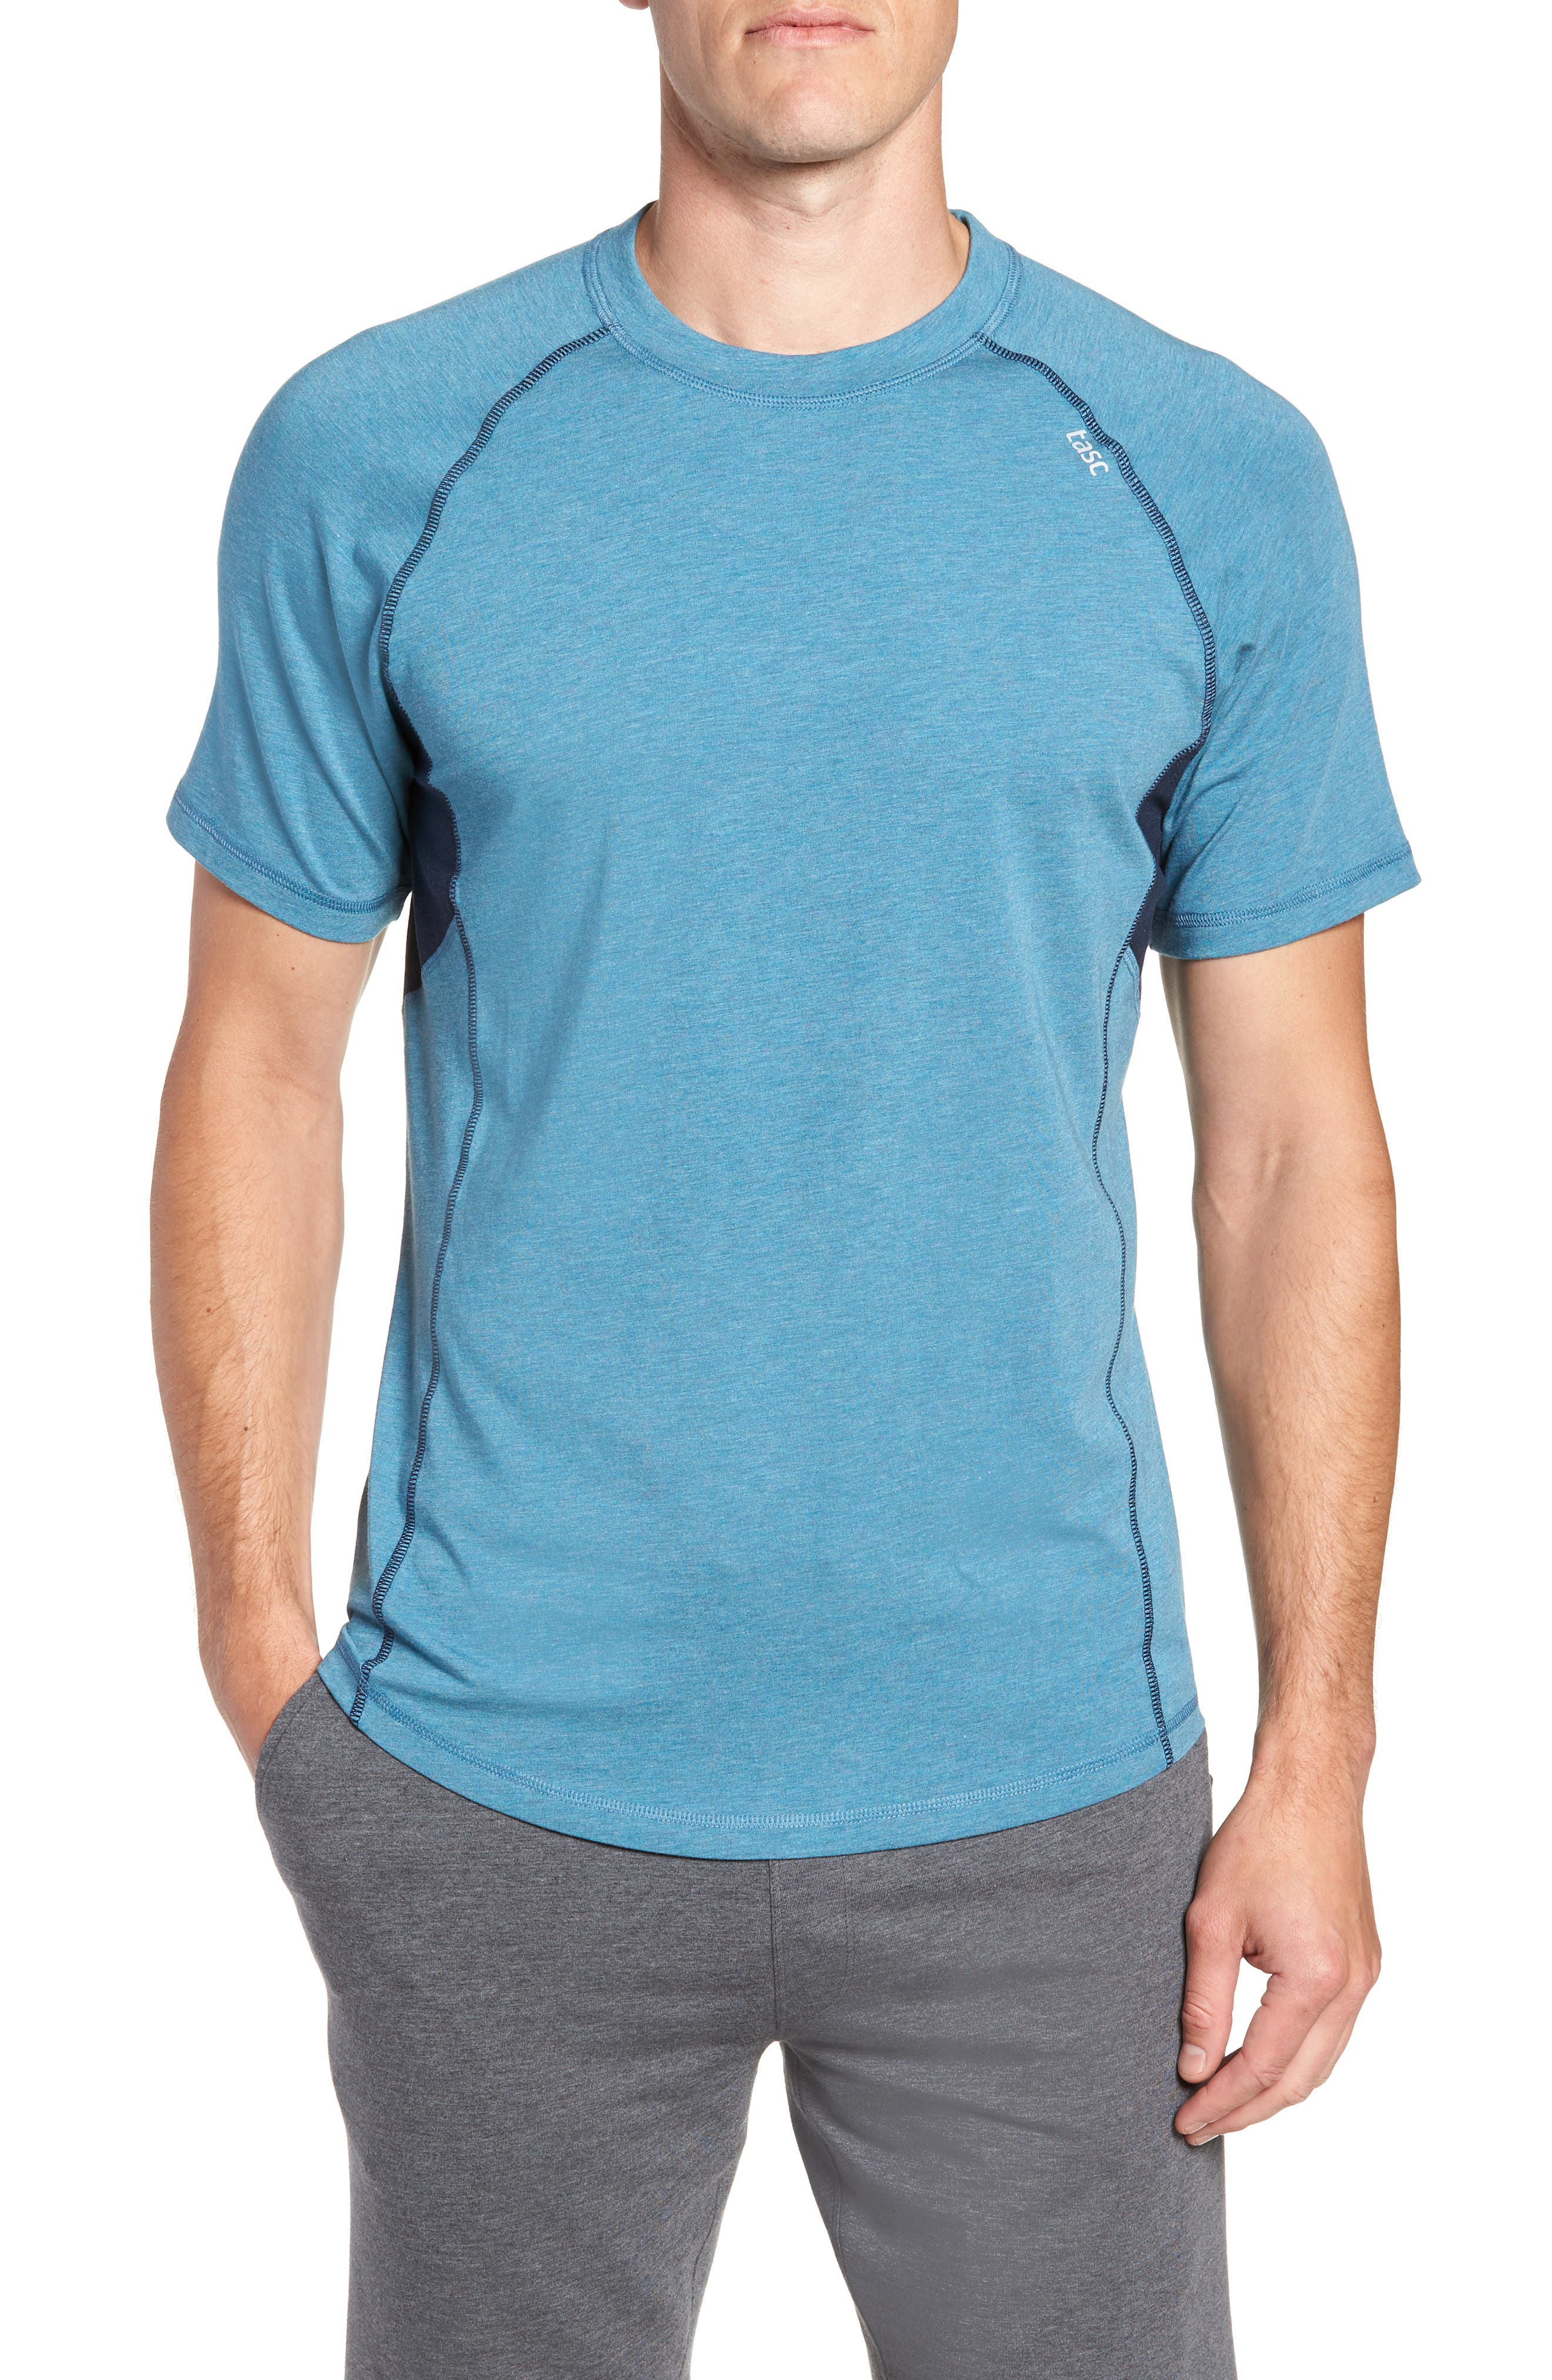 TASC PERFORMANCE Charge II T-Shirt, Main, color, TRANQUILITY SEA HEATHER